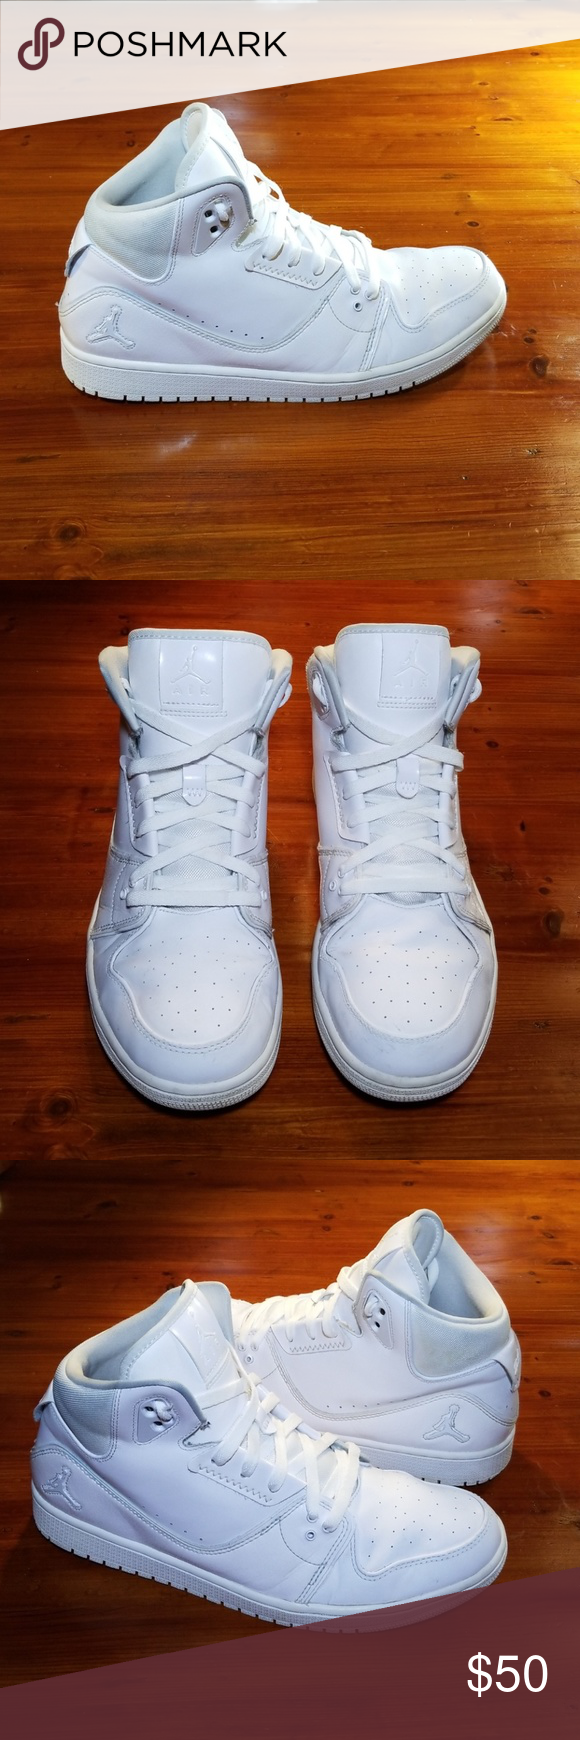 bd3bd0342efba0 Nike Air Jordan 1 Flight 3. All white. Mens 12. Nike Air Jordan 1 Flight 3. All  white. Mens 12. Some small scuffs on shoes. Please see pics. Price reflects.